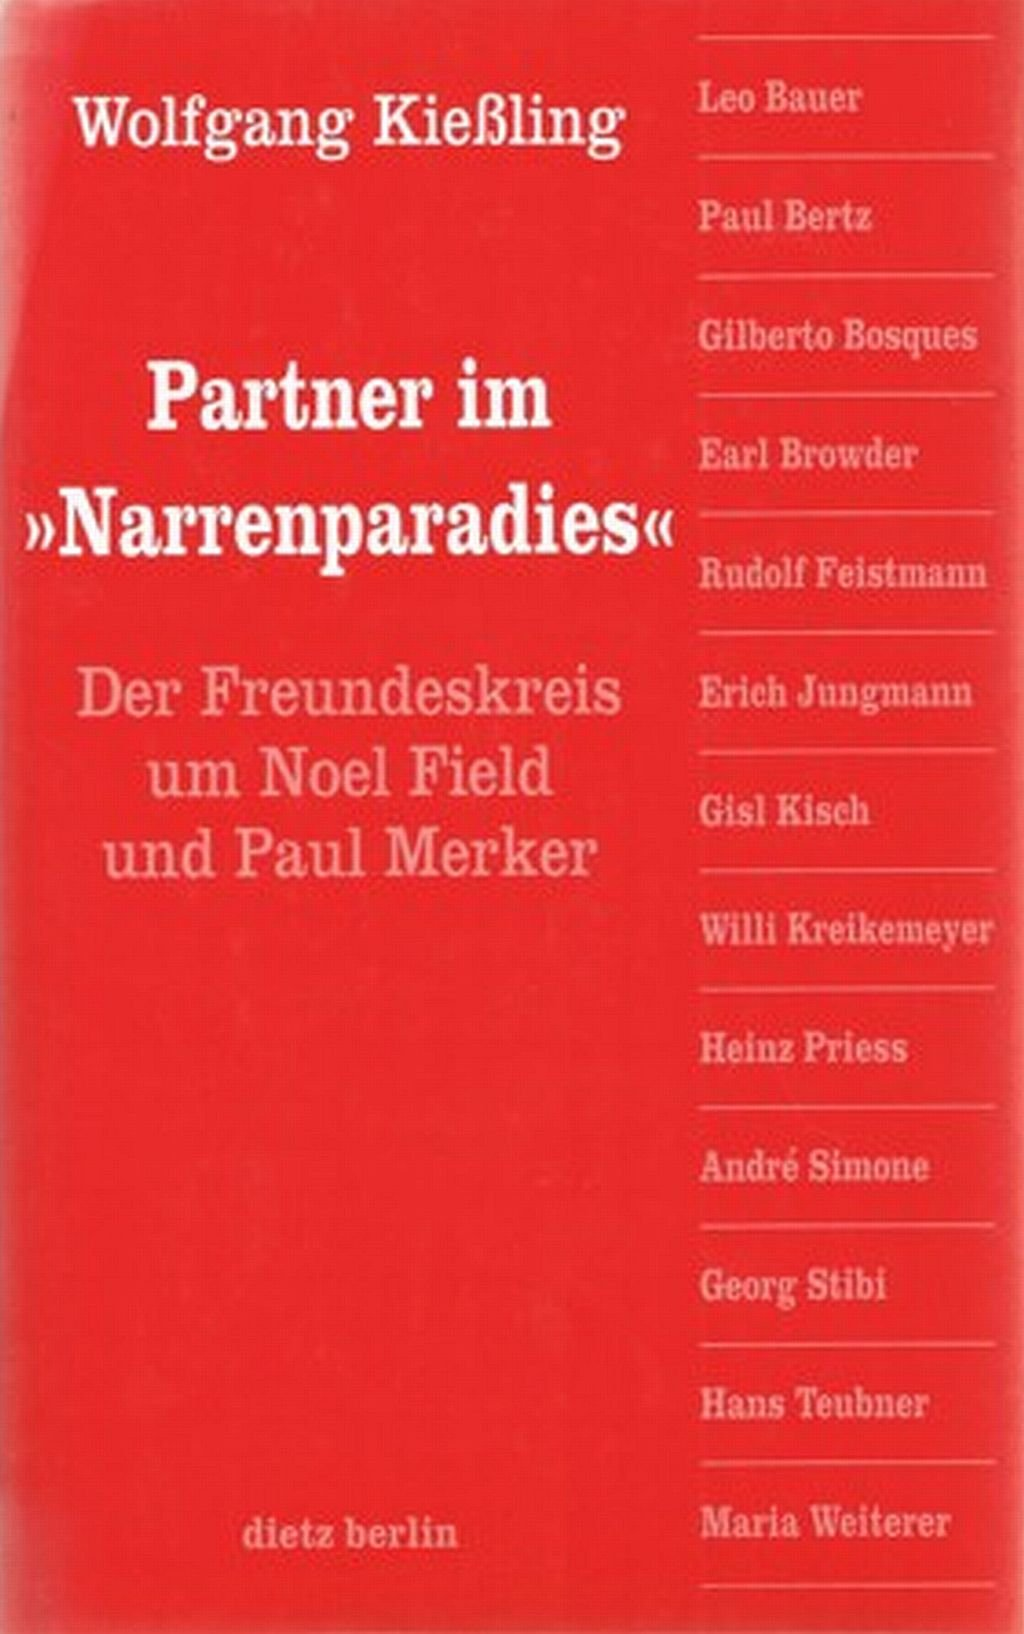 Partner im 'Narrenparadies'. Der Freundeskreis um Noel Field und Paul Merker